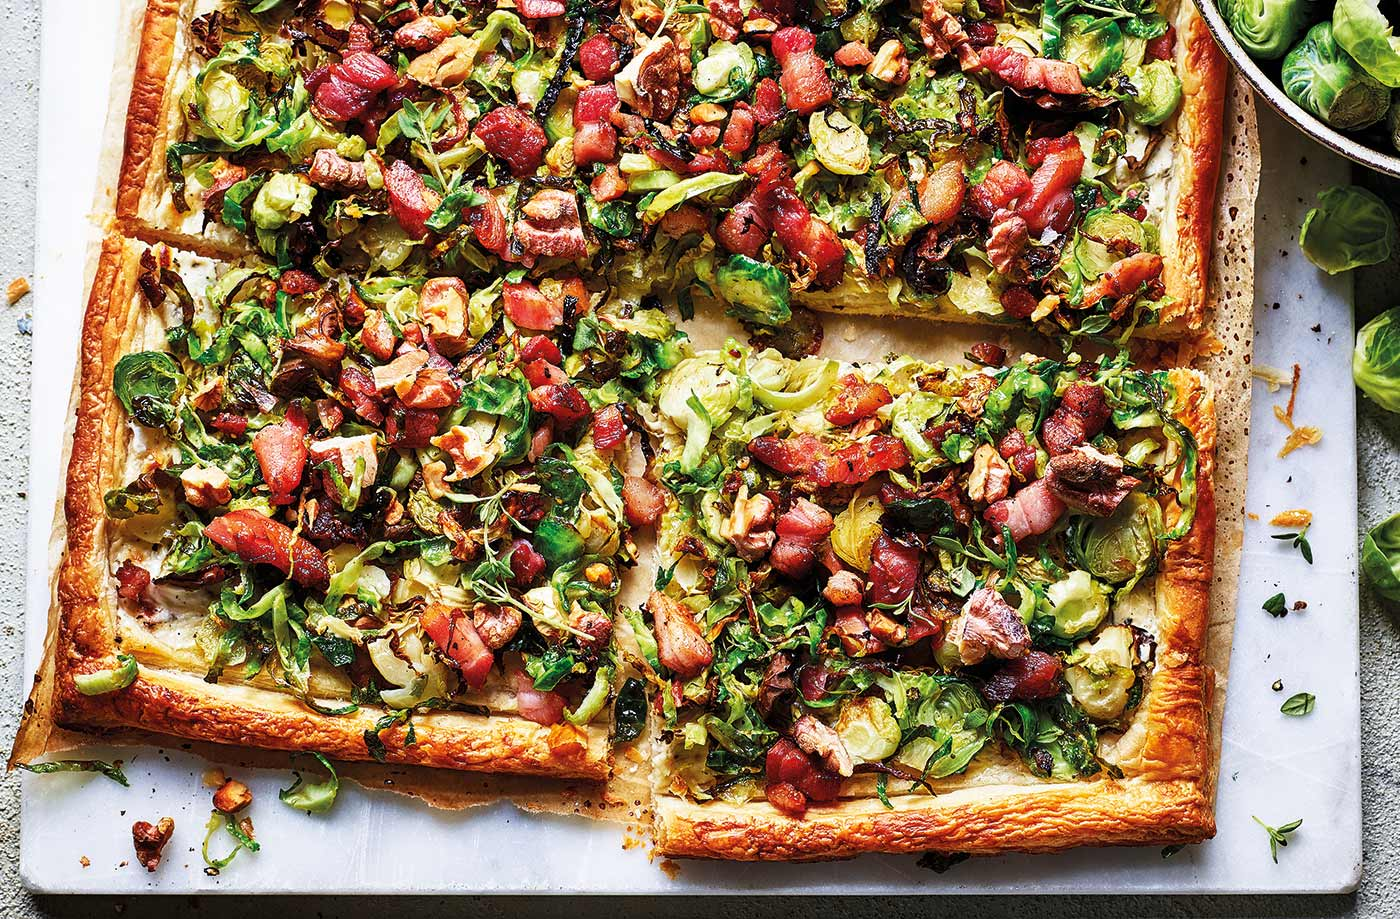 Shredded sprout and bacon tart recipe